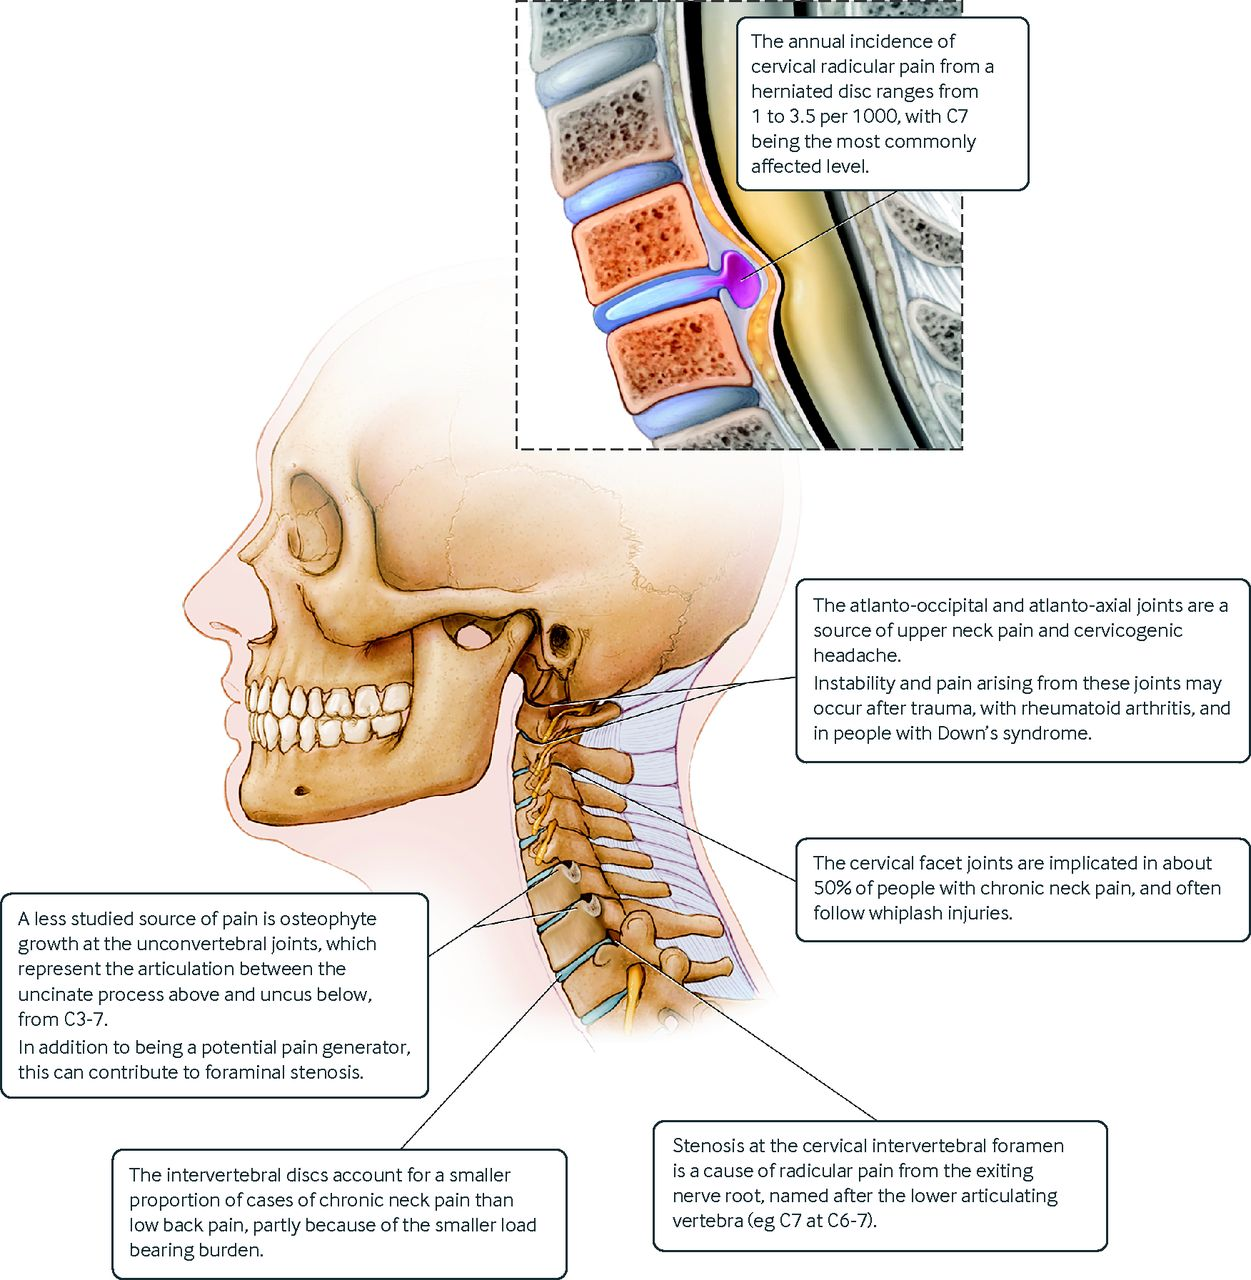 hight resolution of fig 6 sagittal view of cervical spine showing potential pain generators courtesy of frank corl mayo clinic